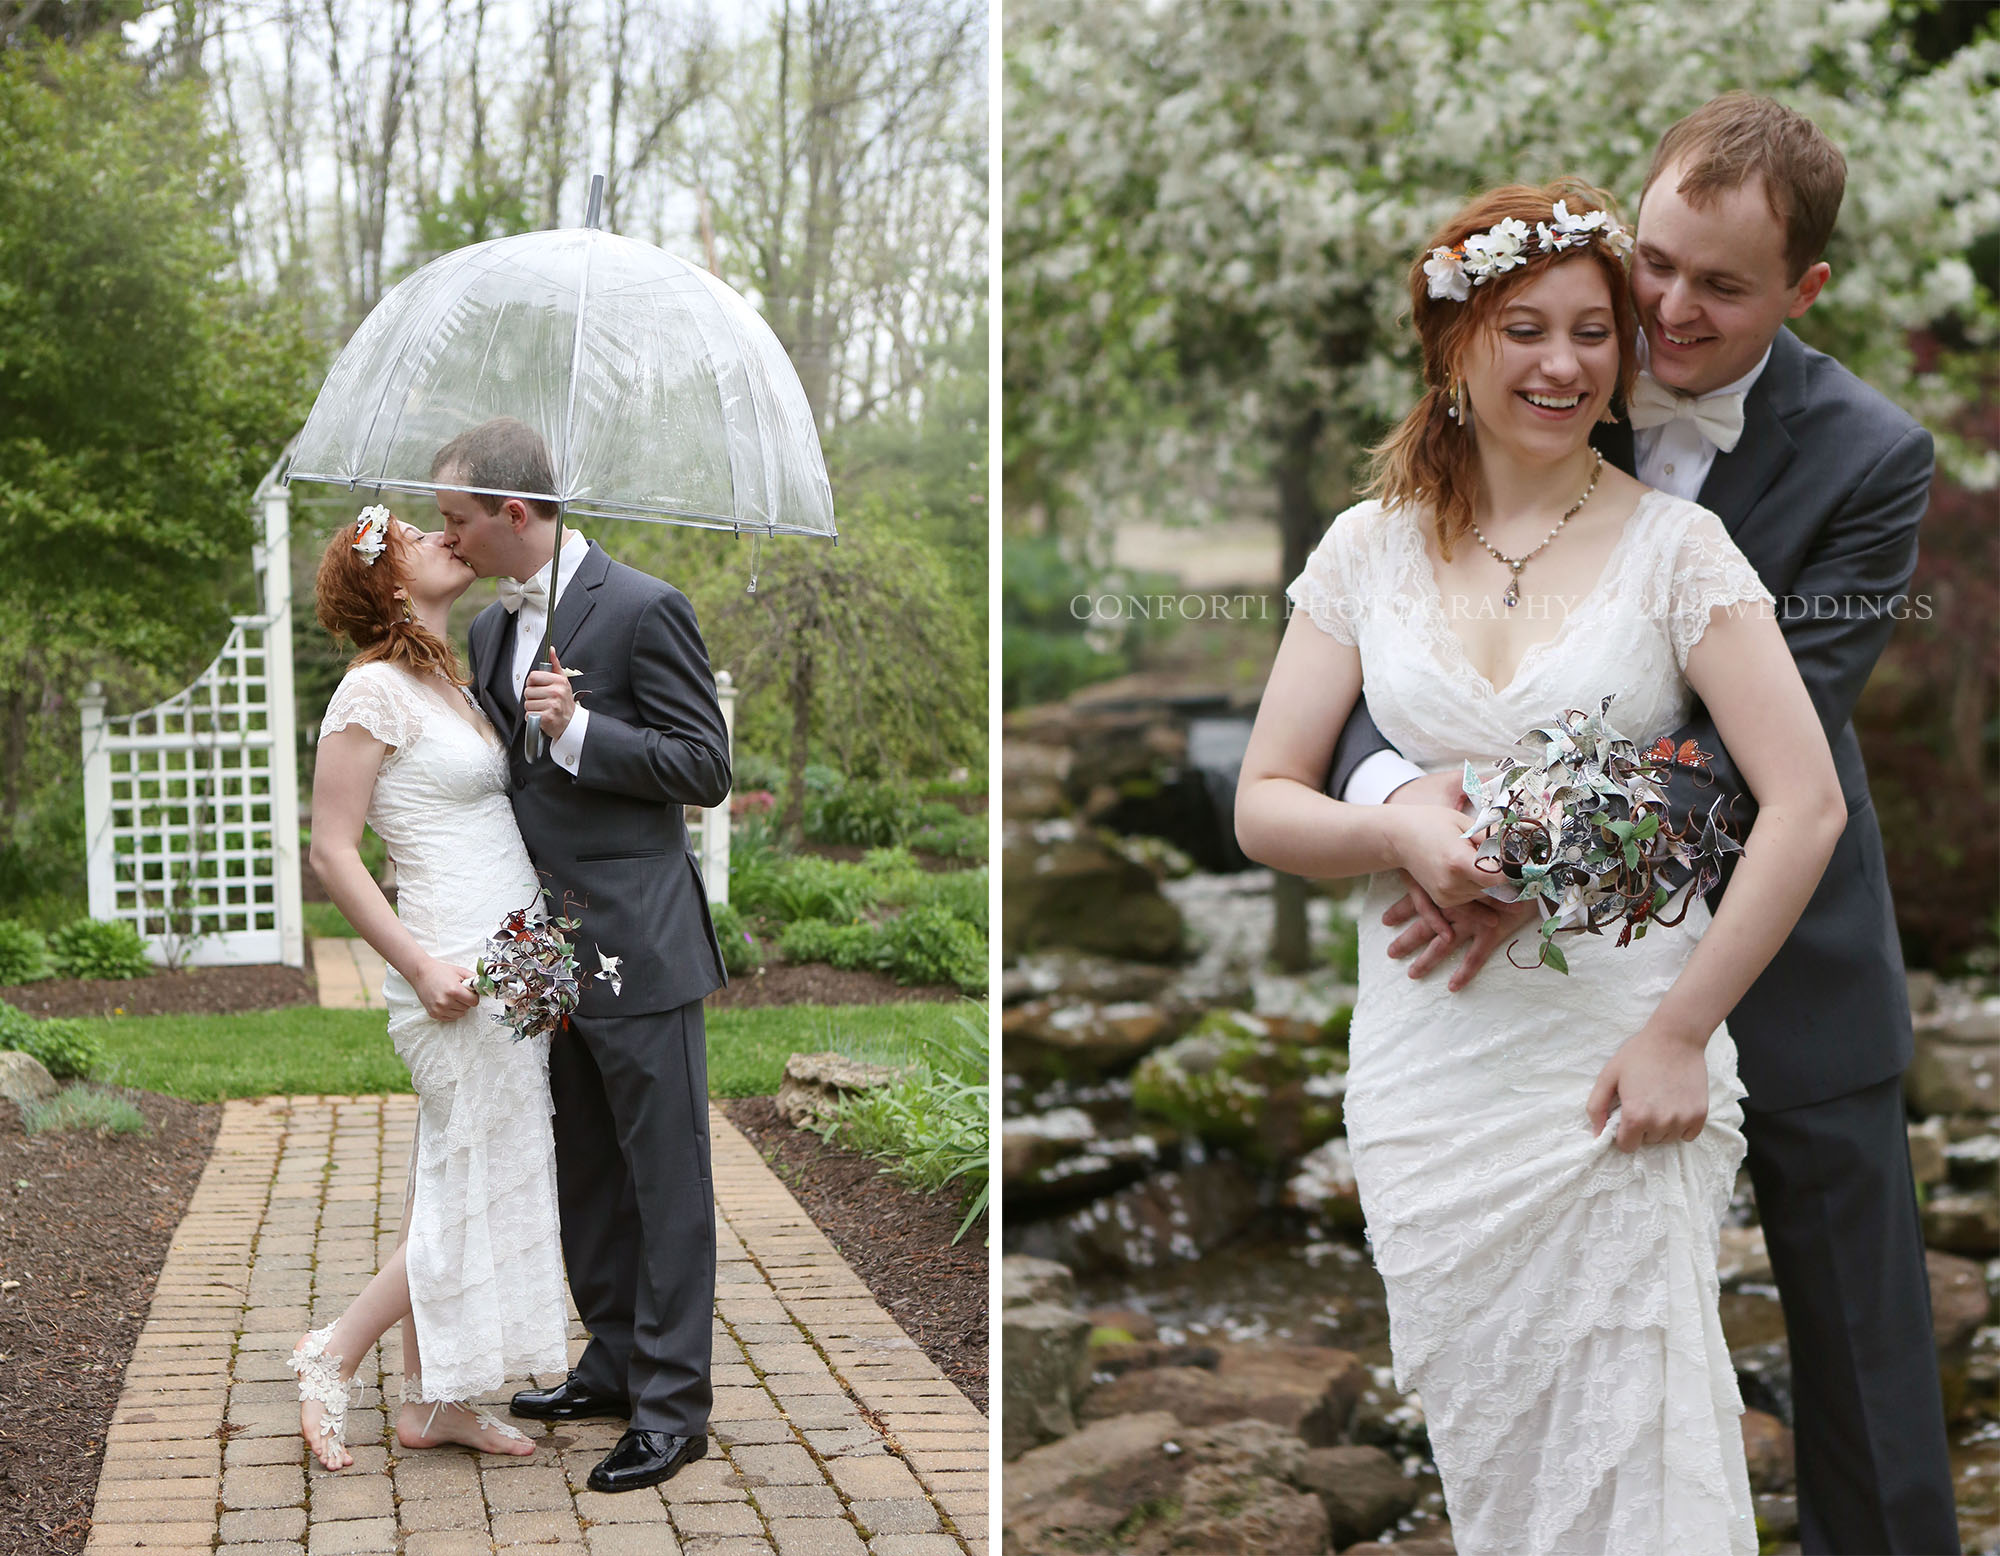 They say rain is good luck on your Wedding Day ;)